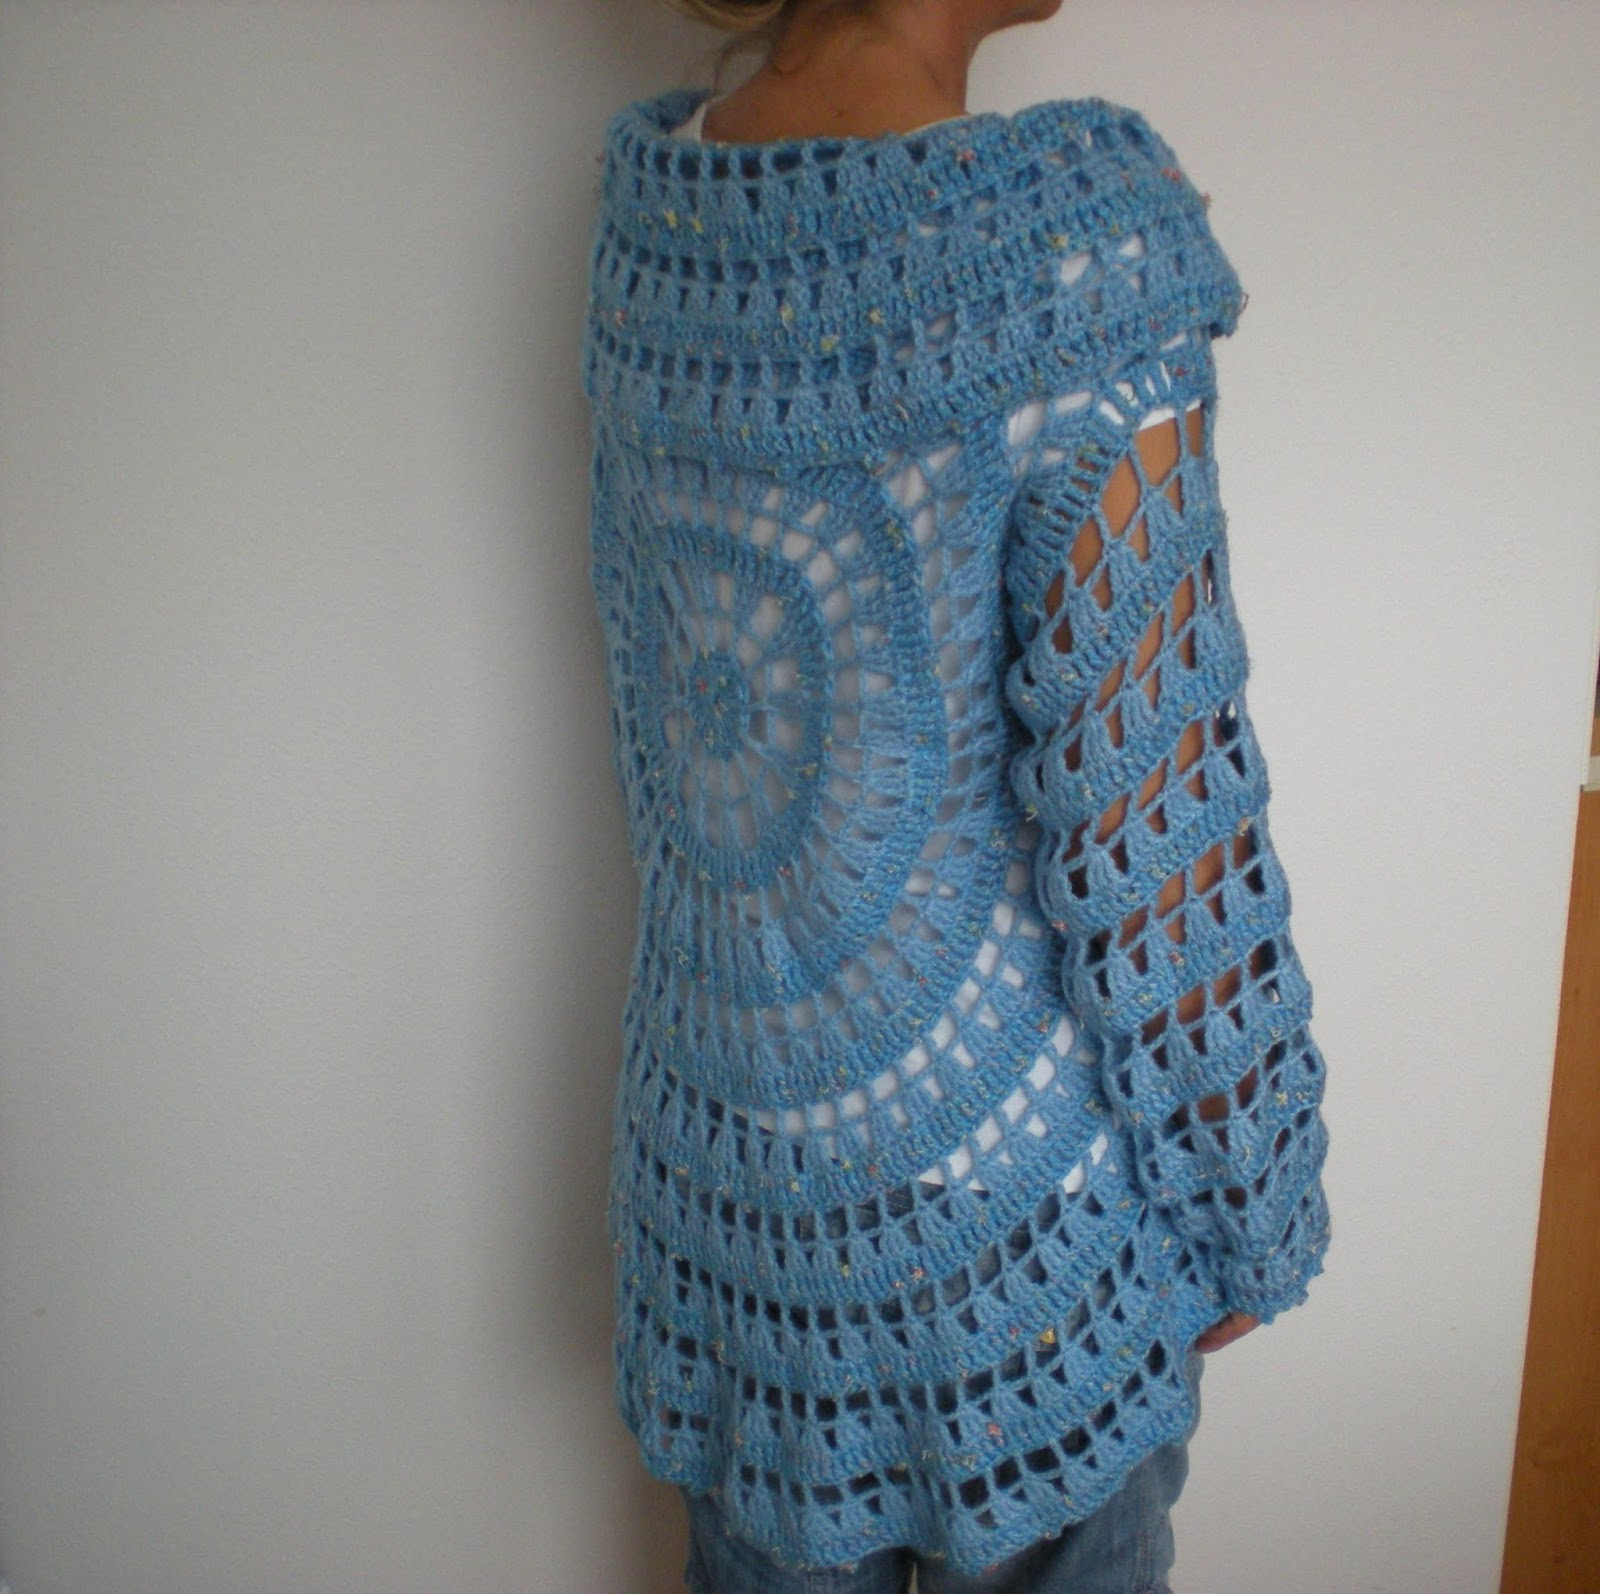 Emmhouse another circular cardigan free crochet pattern all three cardigans are made to order but i have a serious plan to make one for myself as well one day i do have the material already bankloansurffo Image collections